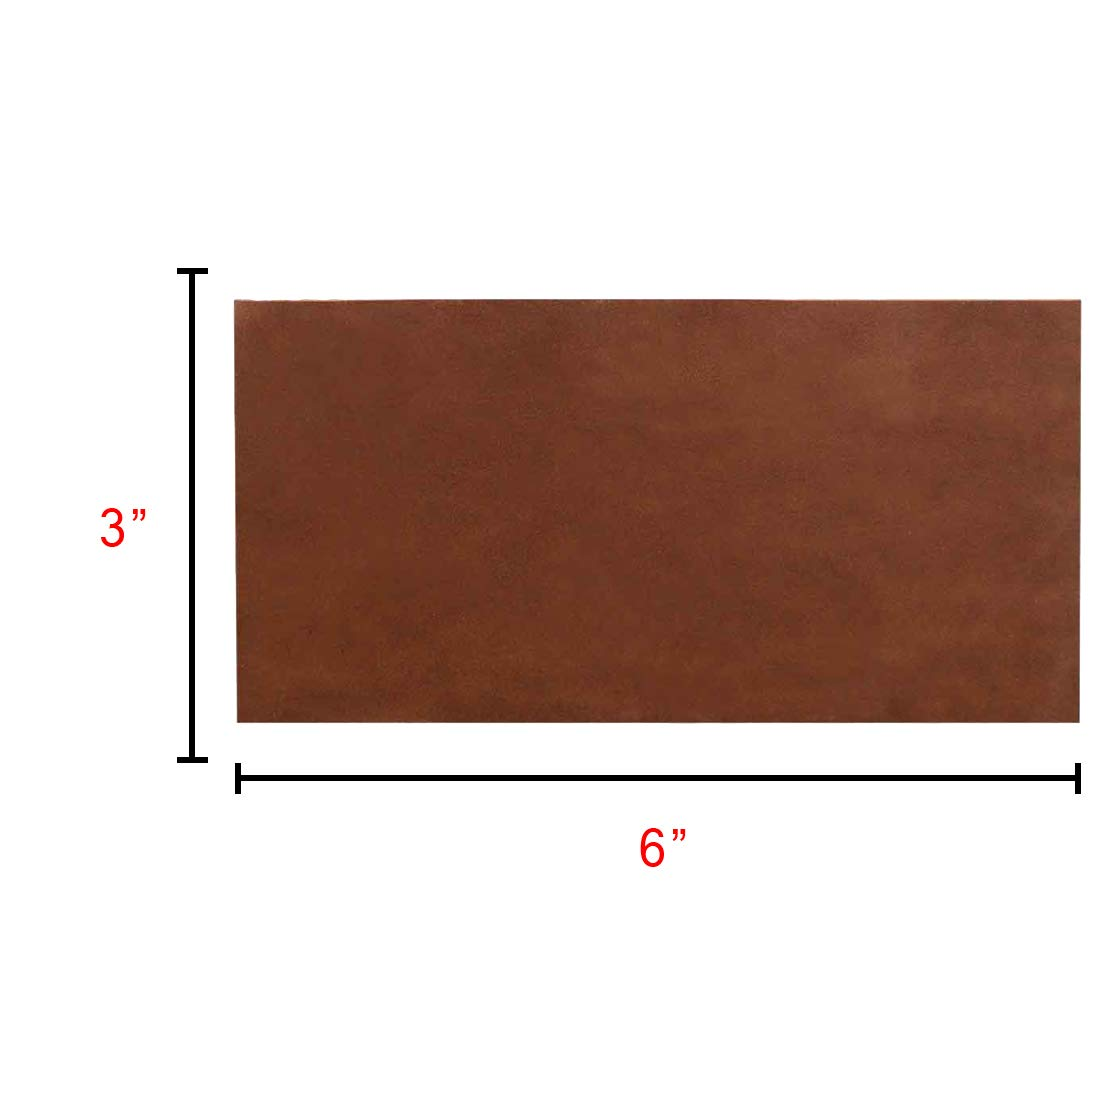 Hide /& Drink 8 Piece Set for Crafts//Tooling//Hobby Workshop :: Swayze Suede Heavy Weight 3 x 6 in. 1.6-1.8mm Rustic Leather Rectangles